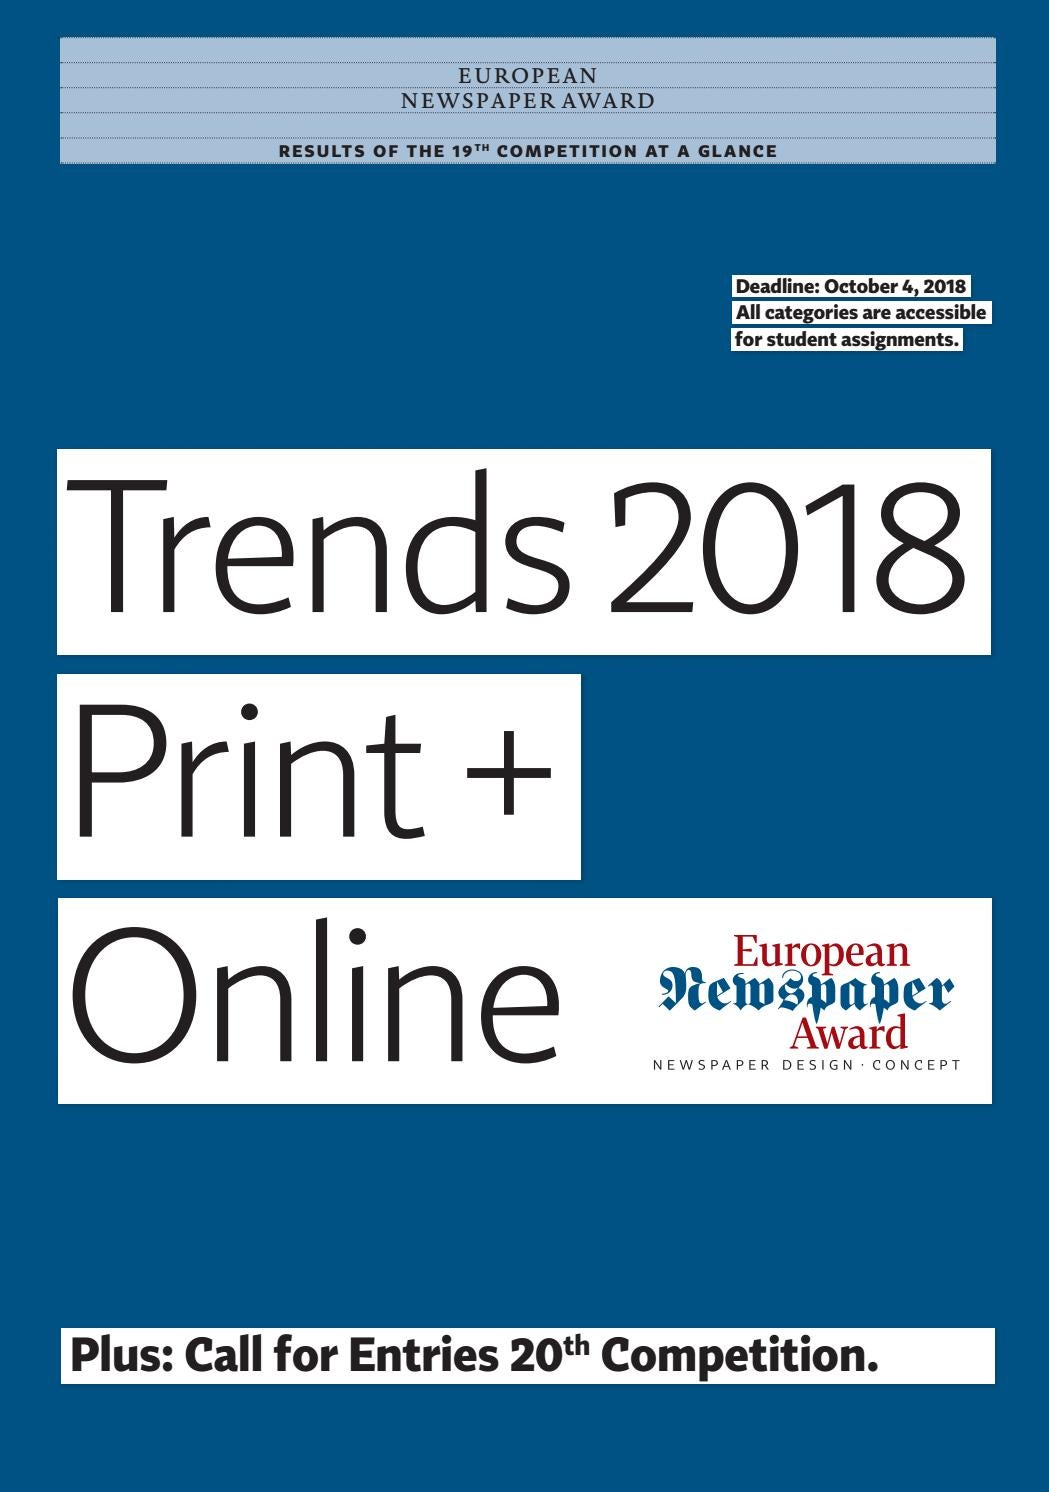 Trends 19th European Newspaper Award Call For Entries 20th